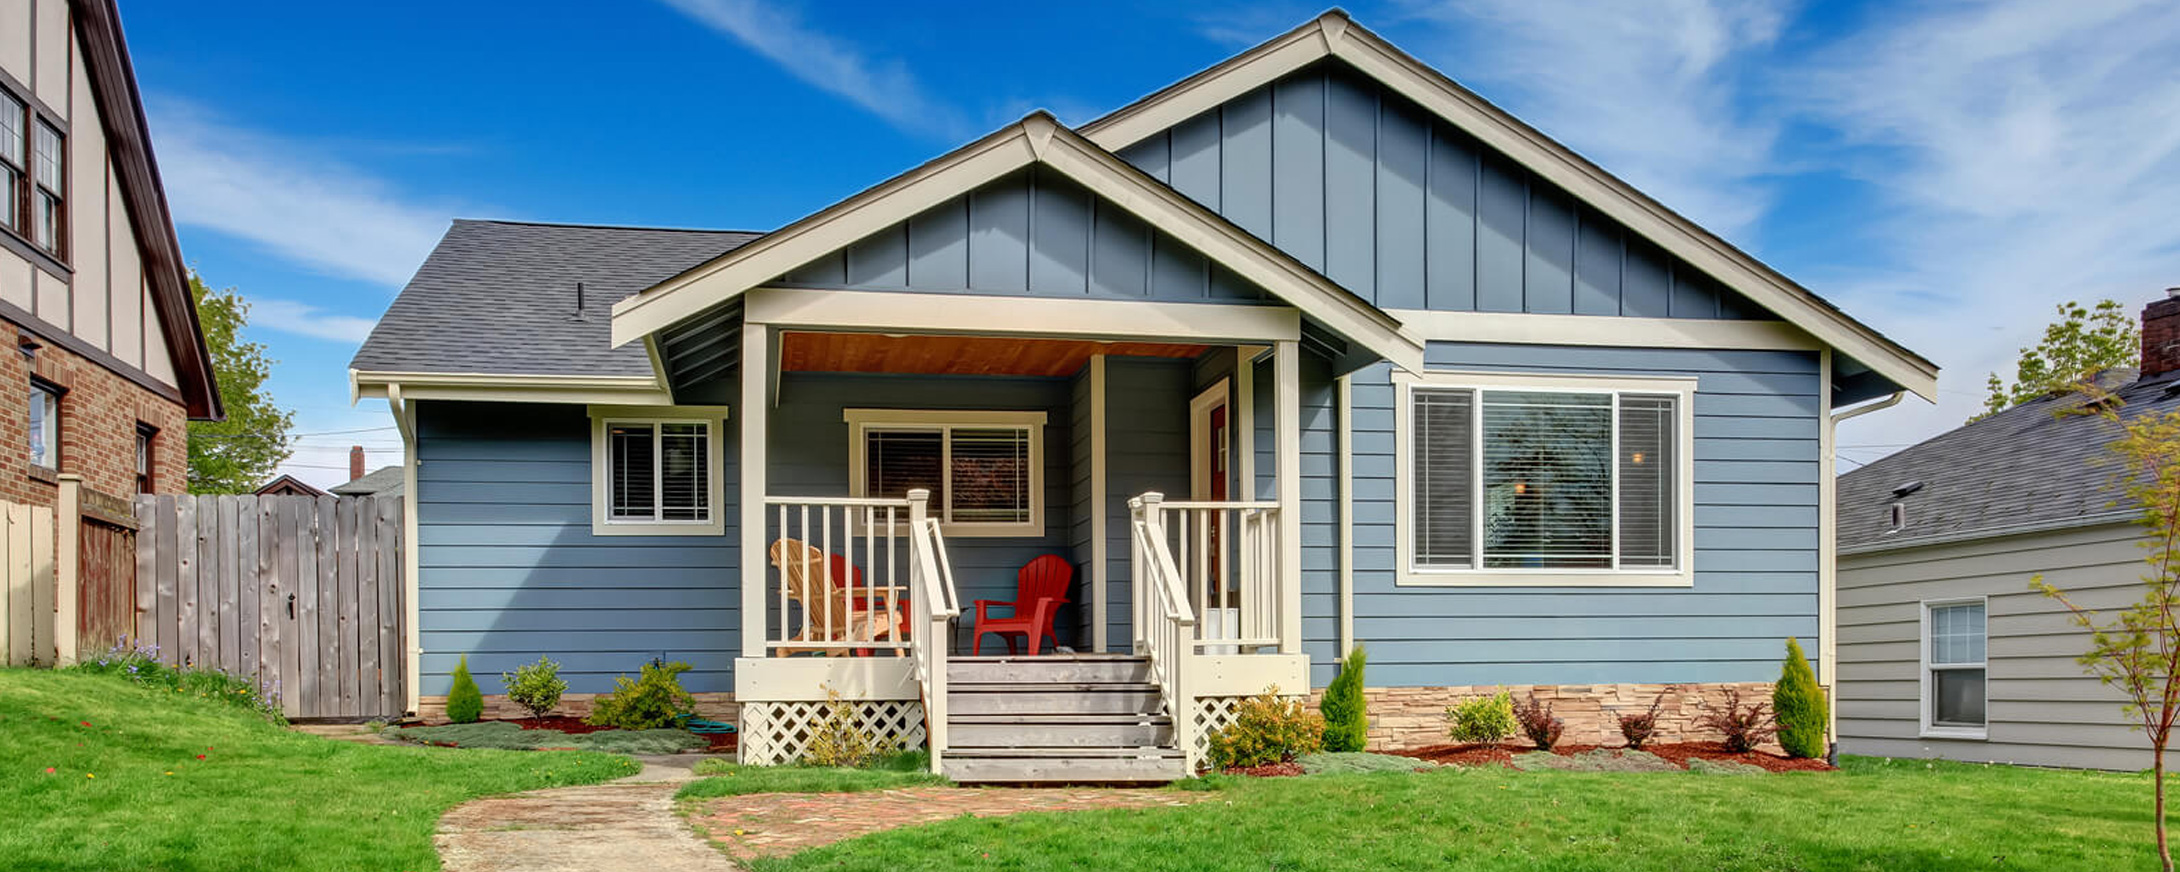 Surprising All Bungalows For Sale In Ottawa Ottawa Real Estate Home Interior And Landscaping Ologienasavecom